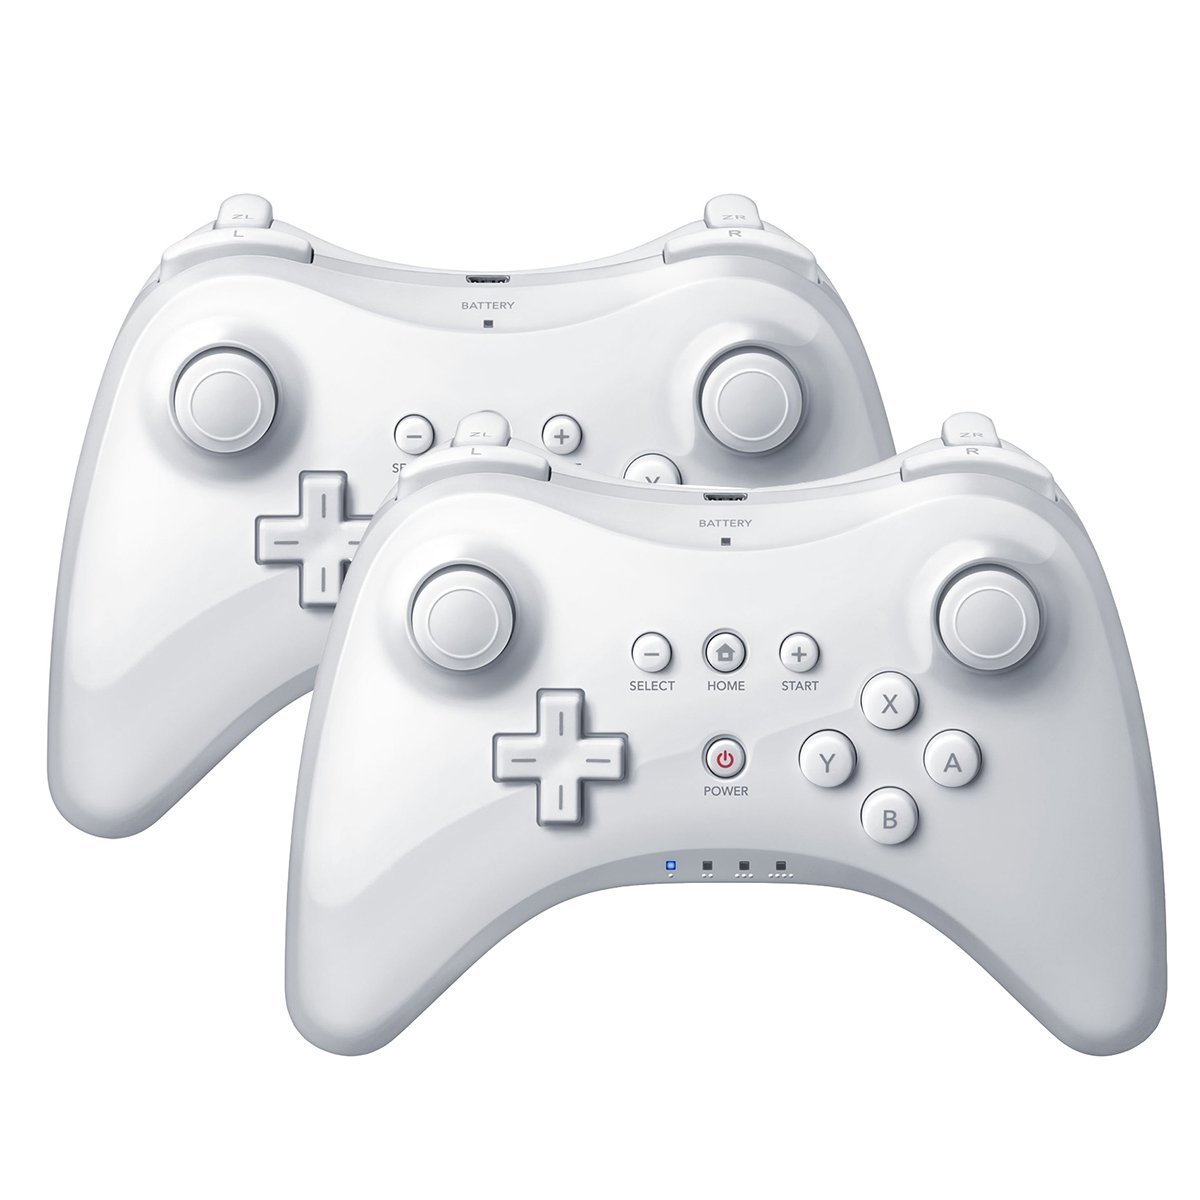 QUMOX 2x White Wireless Bluetooth Remote U Pro Controller Gamepad for Nintendo Wii U by QUMOX (Image #1)